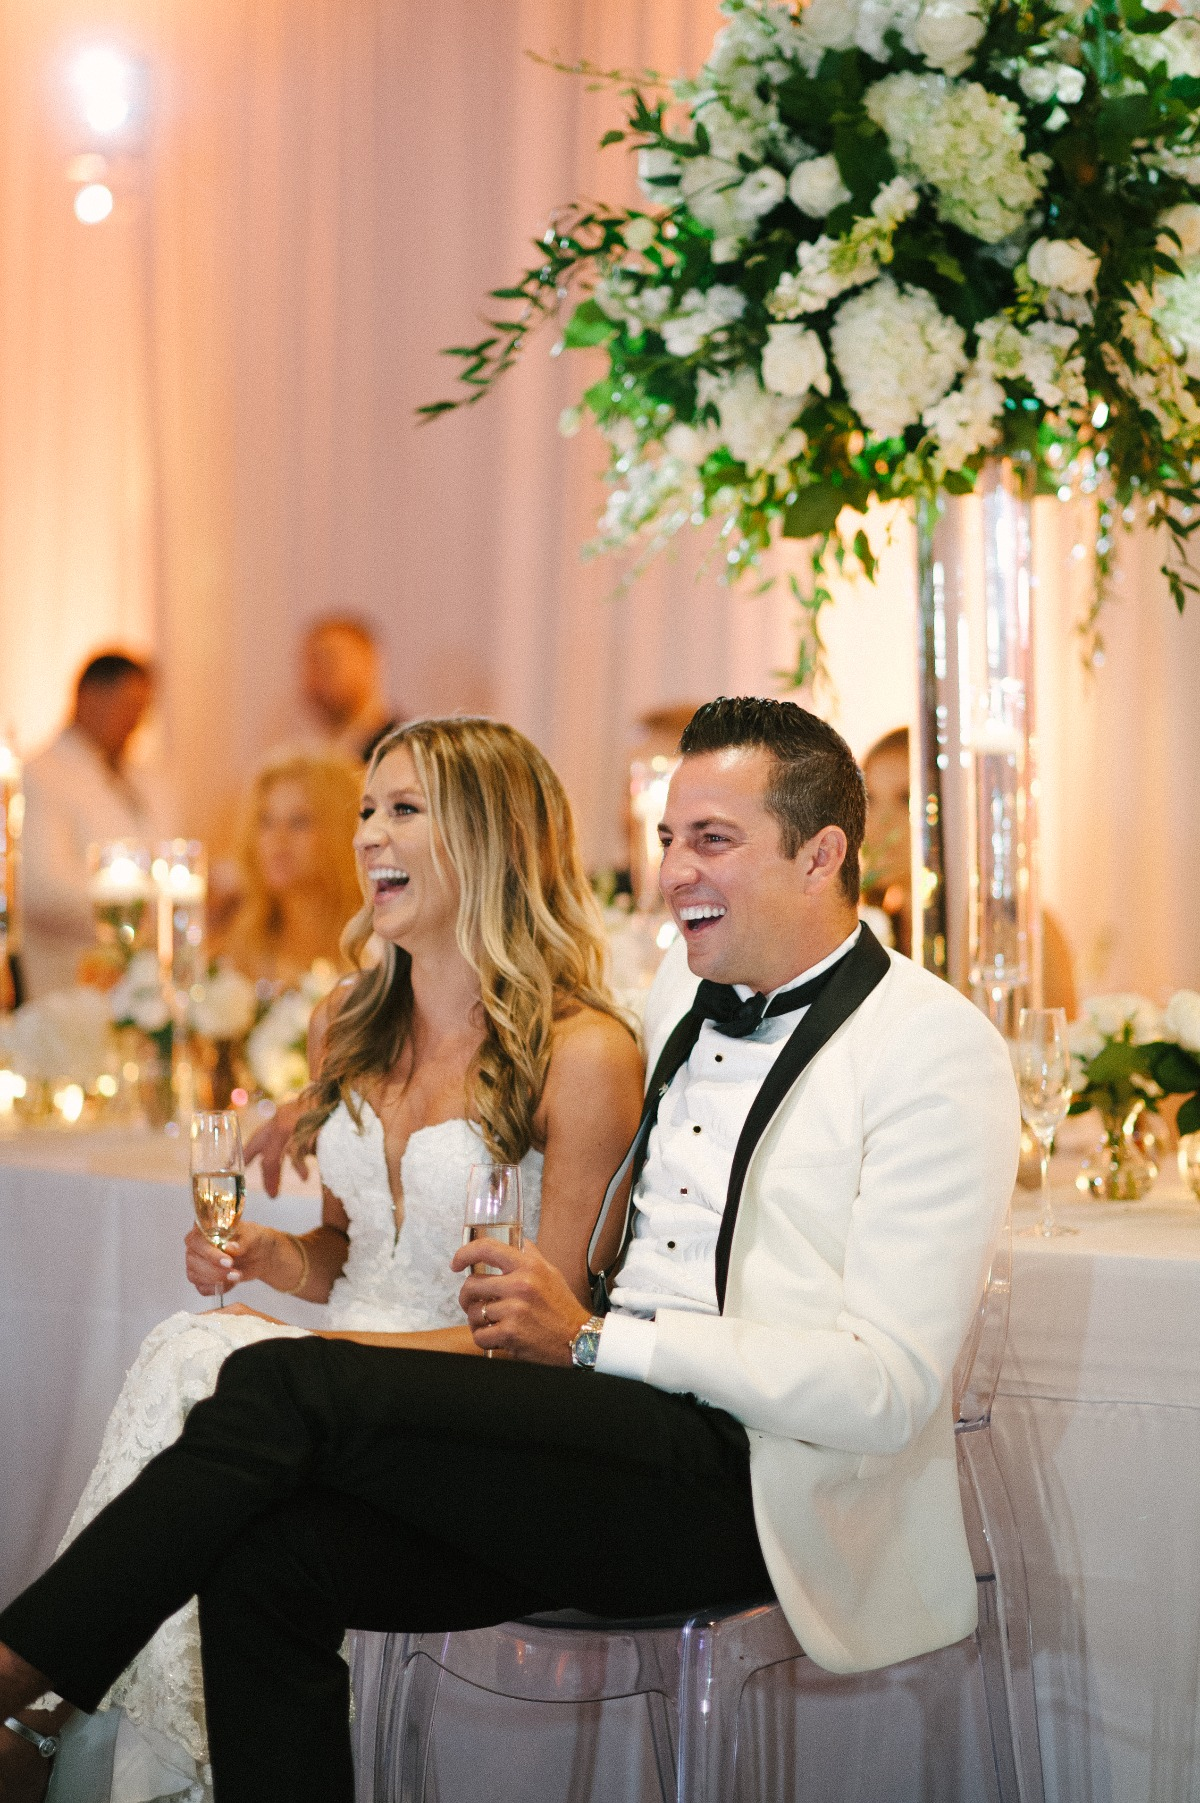 Don't Wear White To A Wedding–This Couple Would Disagree